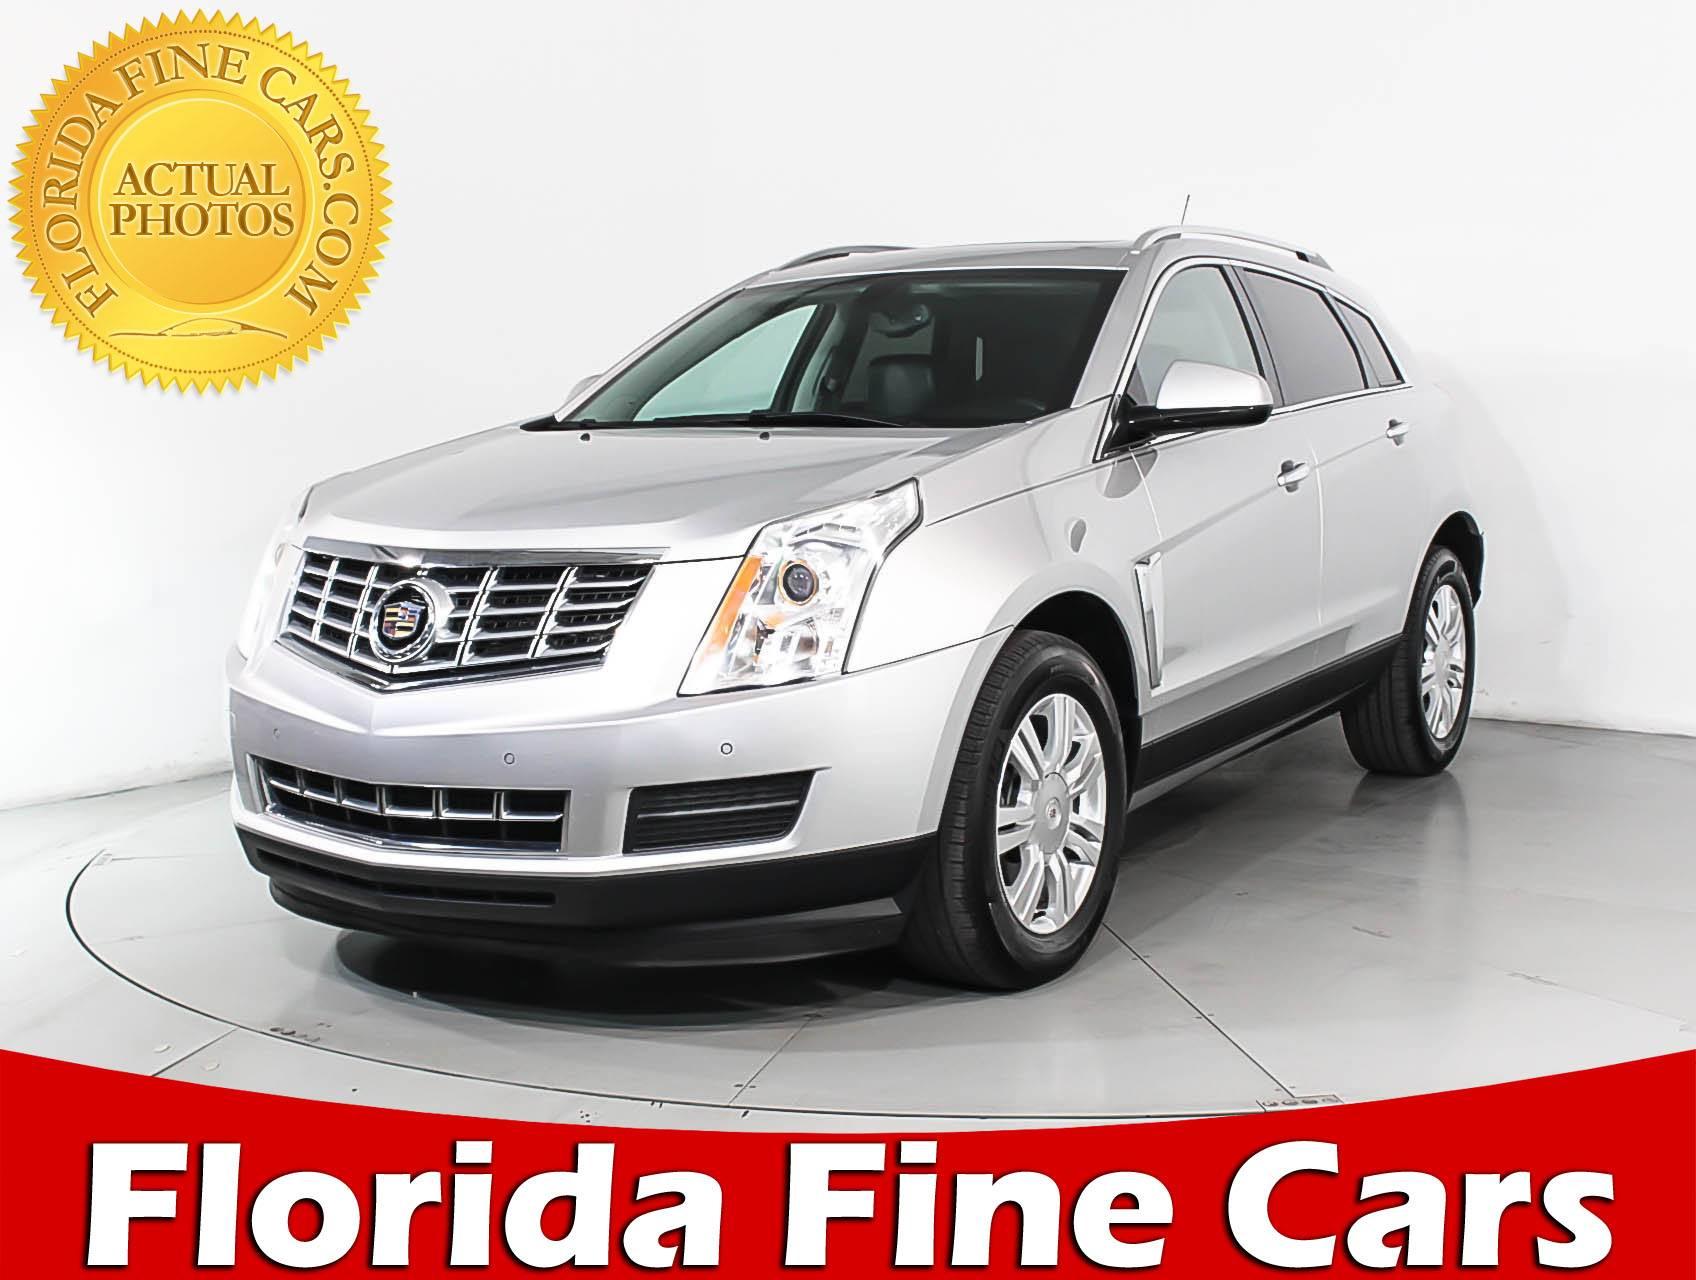 specs overview srx international prices intl bbcrafj price cadillac